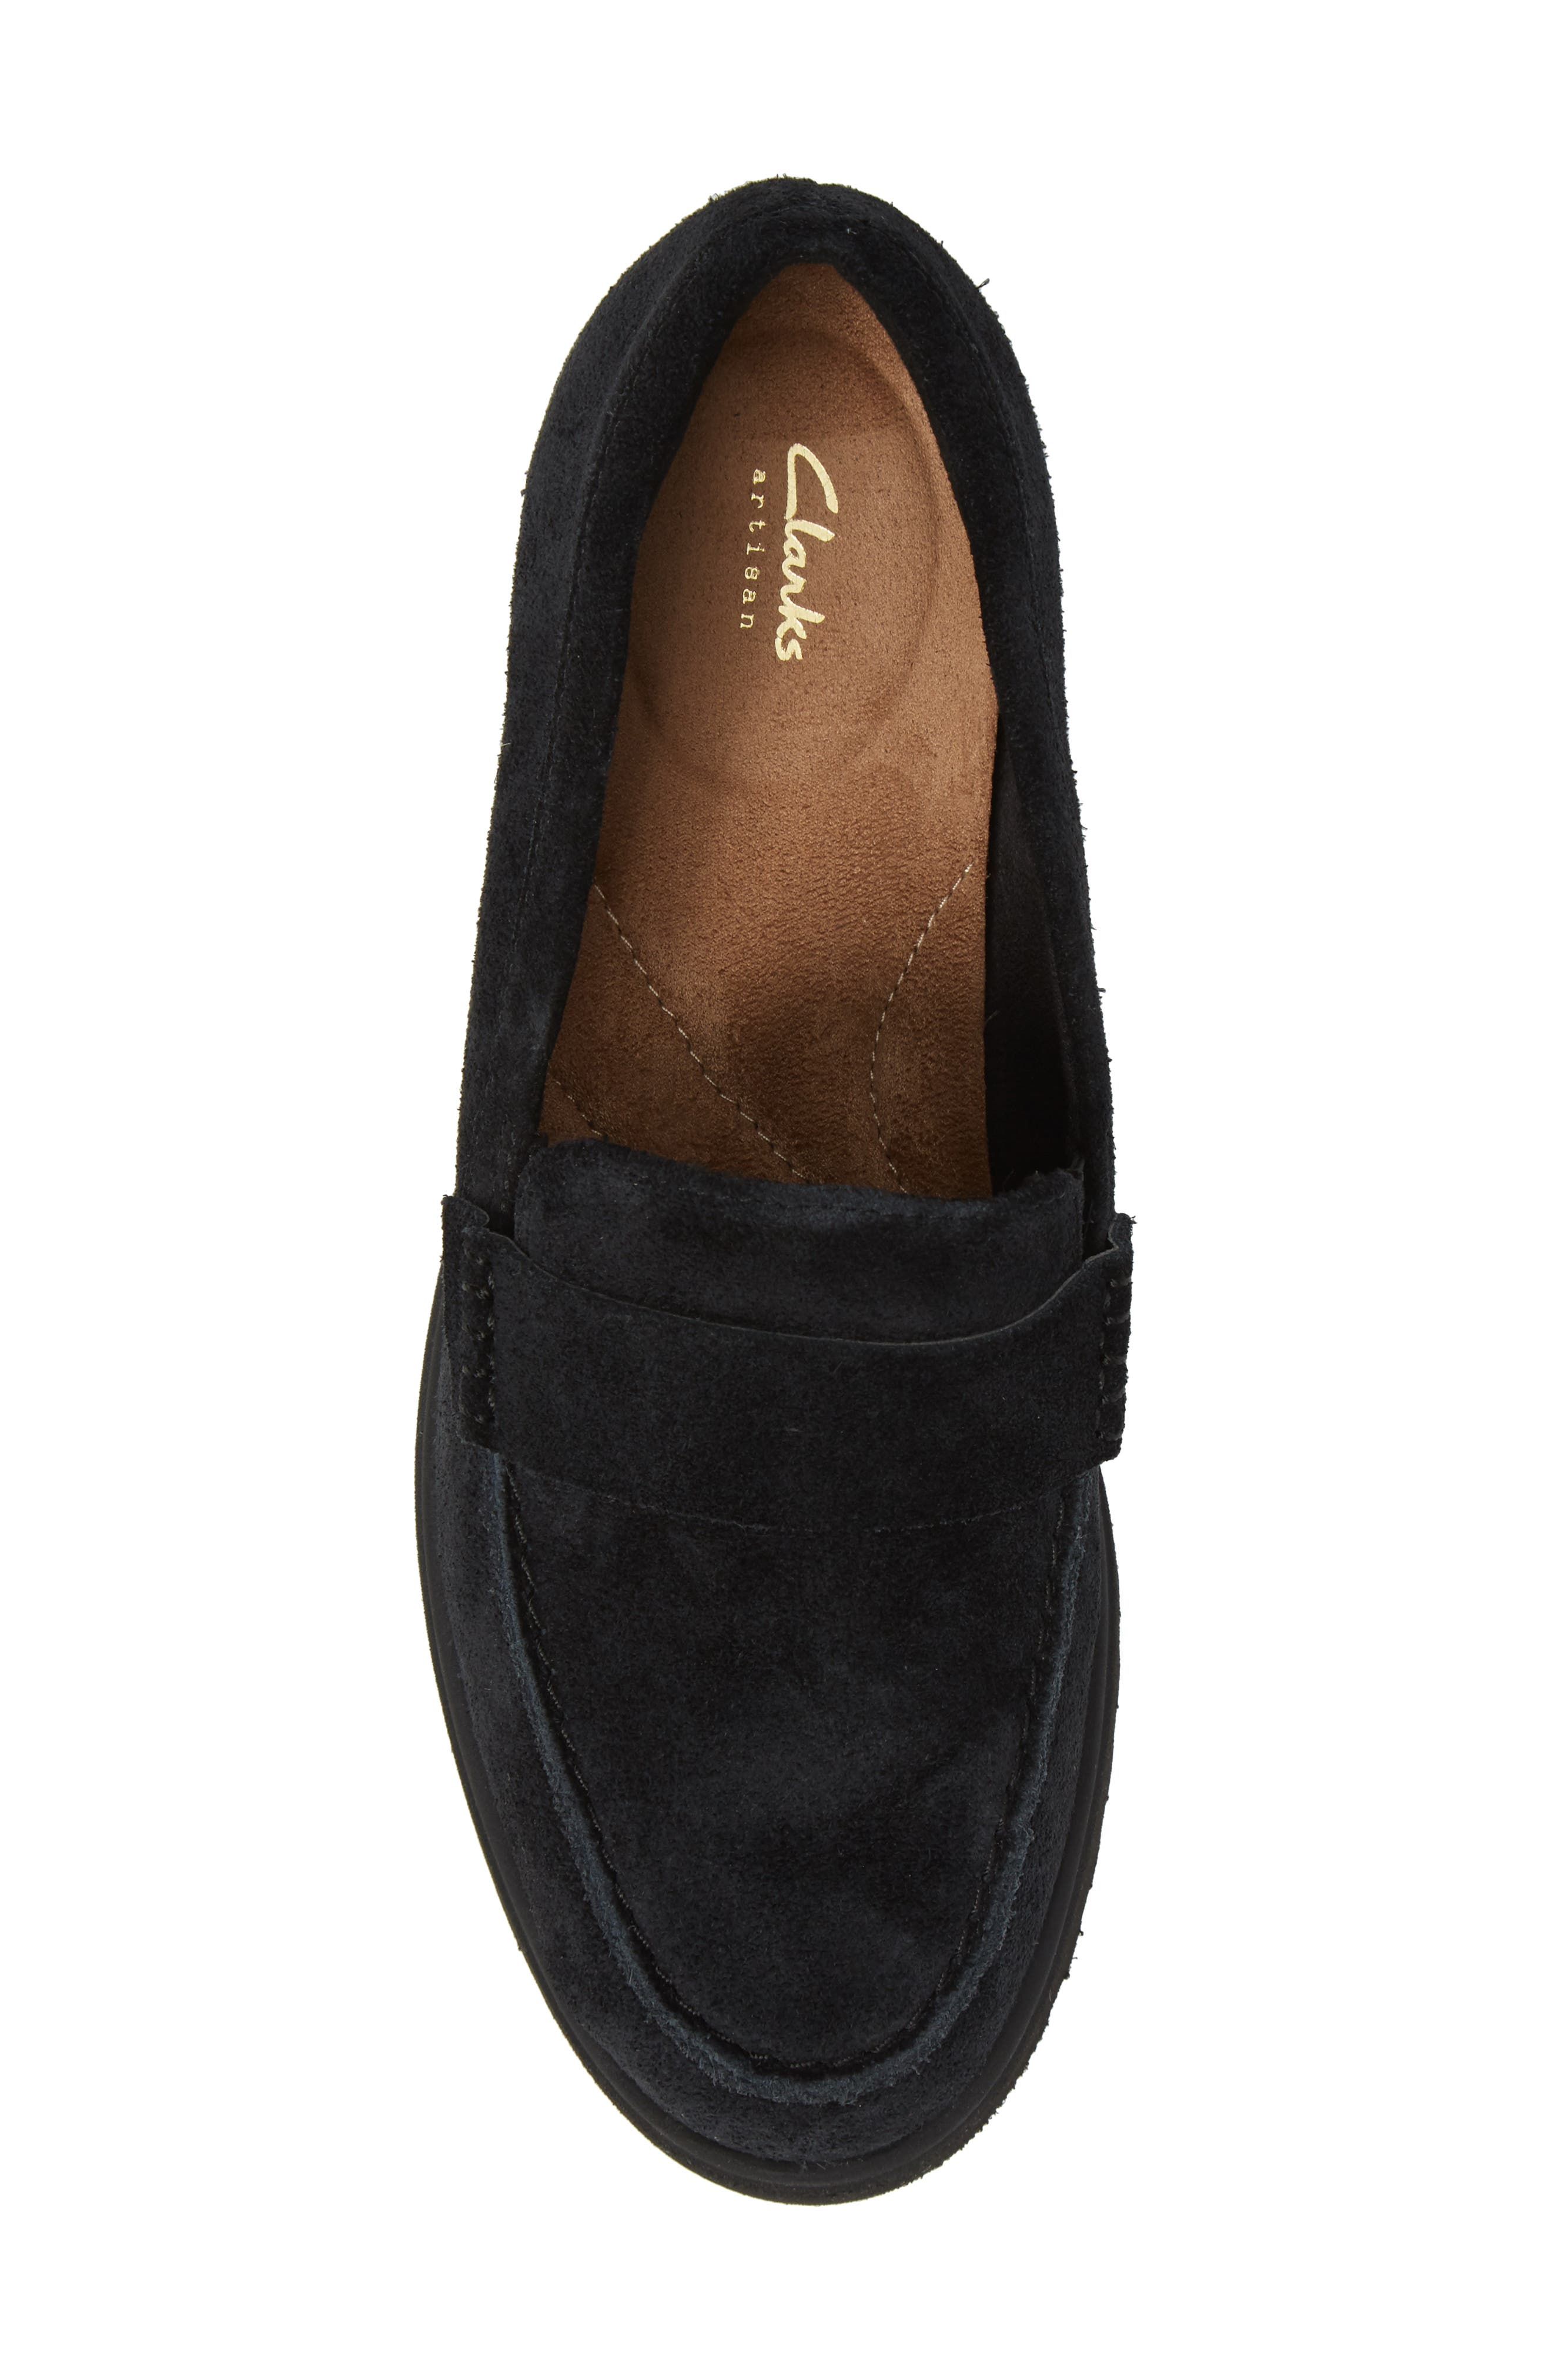 Bellevue Hazen Loafer,                             Alternate thumbnail 5, color,                             001